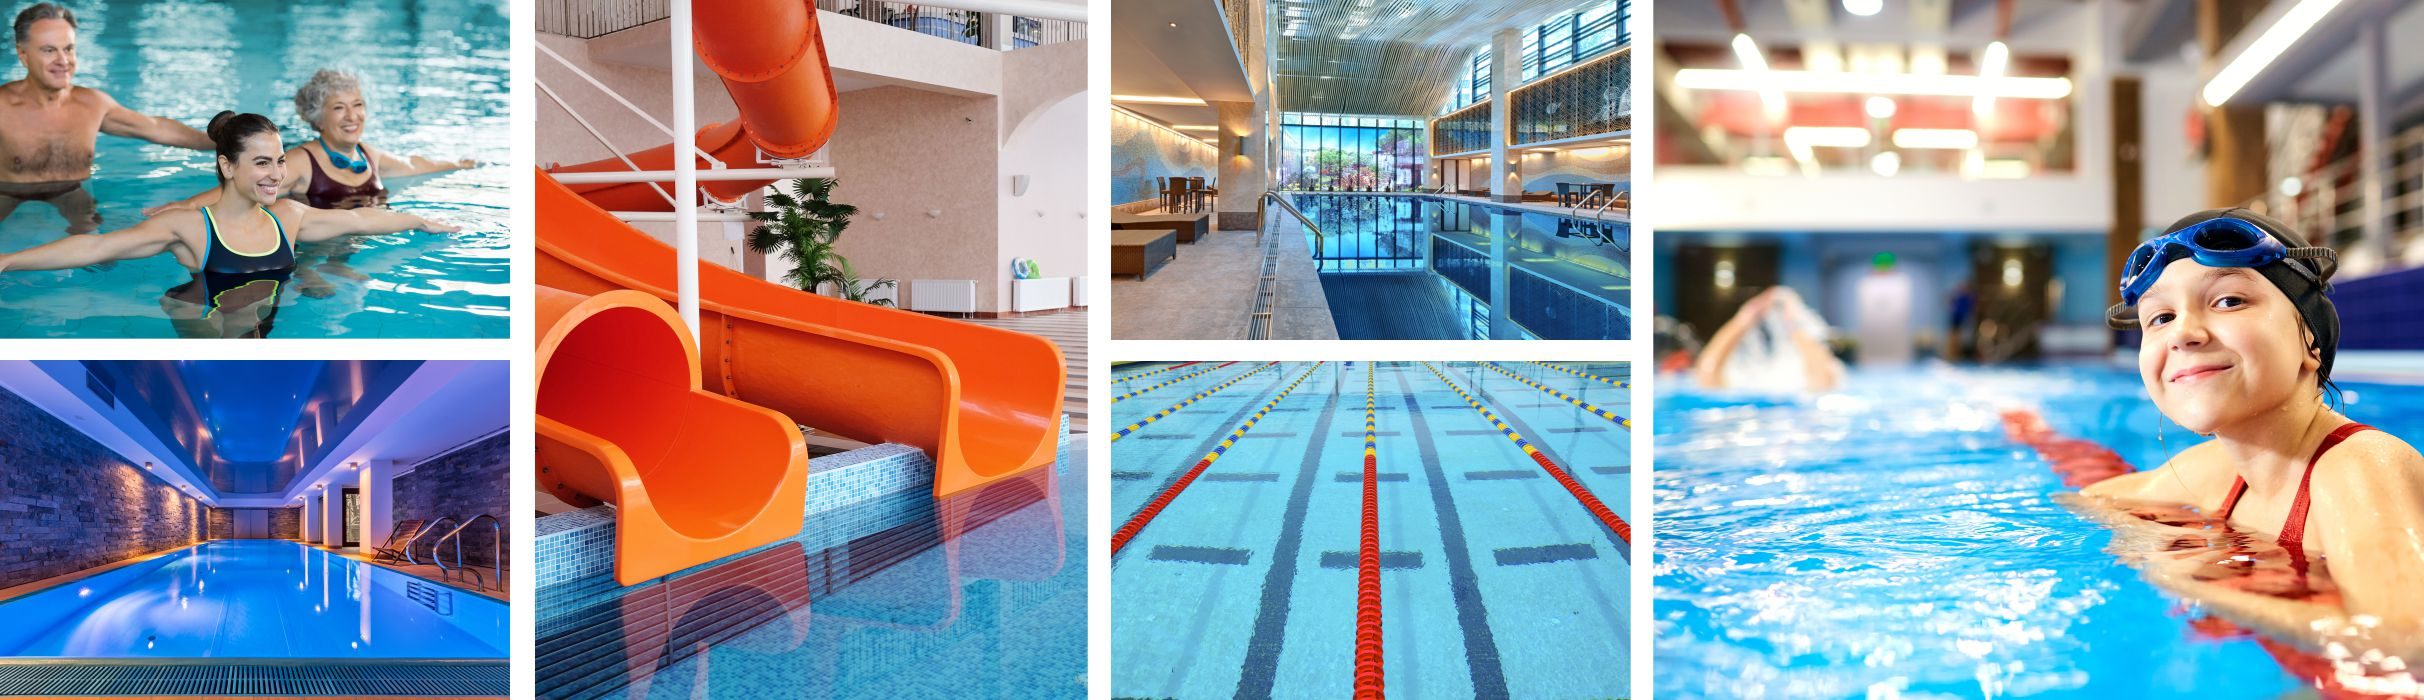 several photos of indoor pools